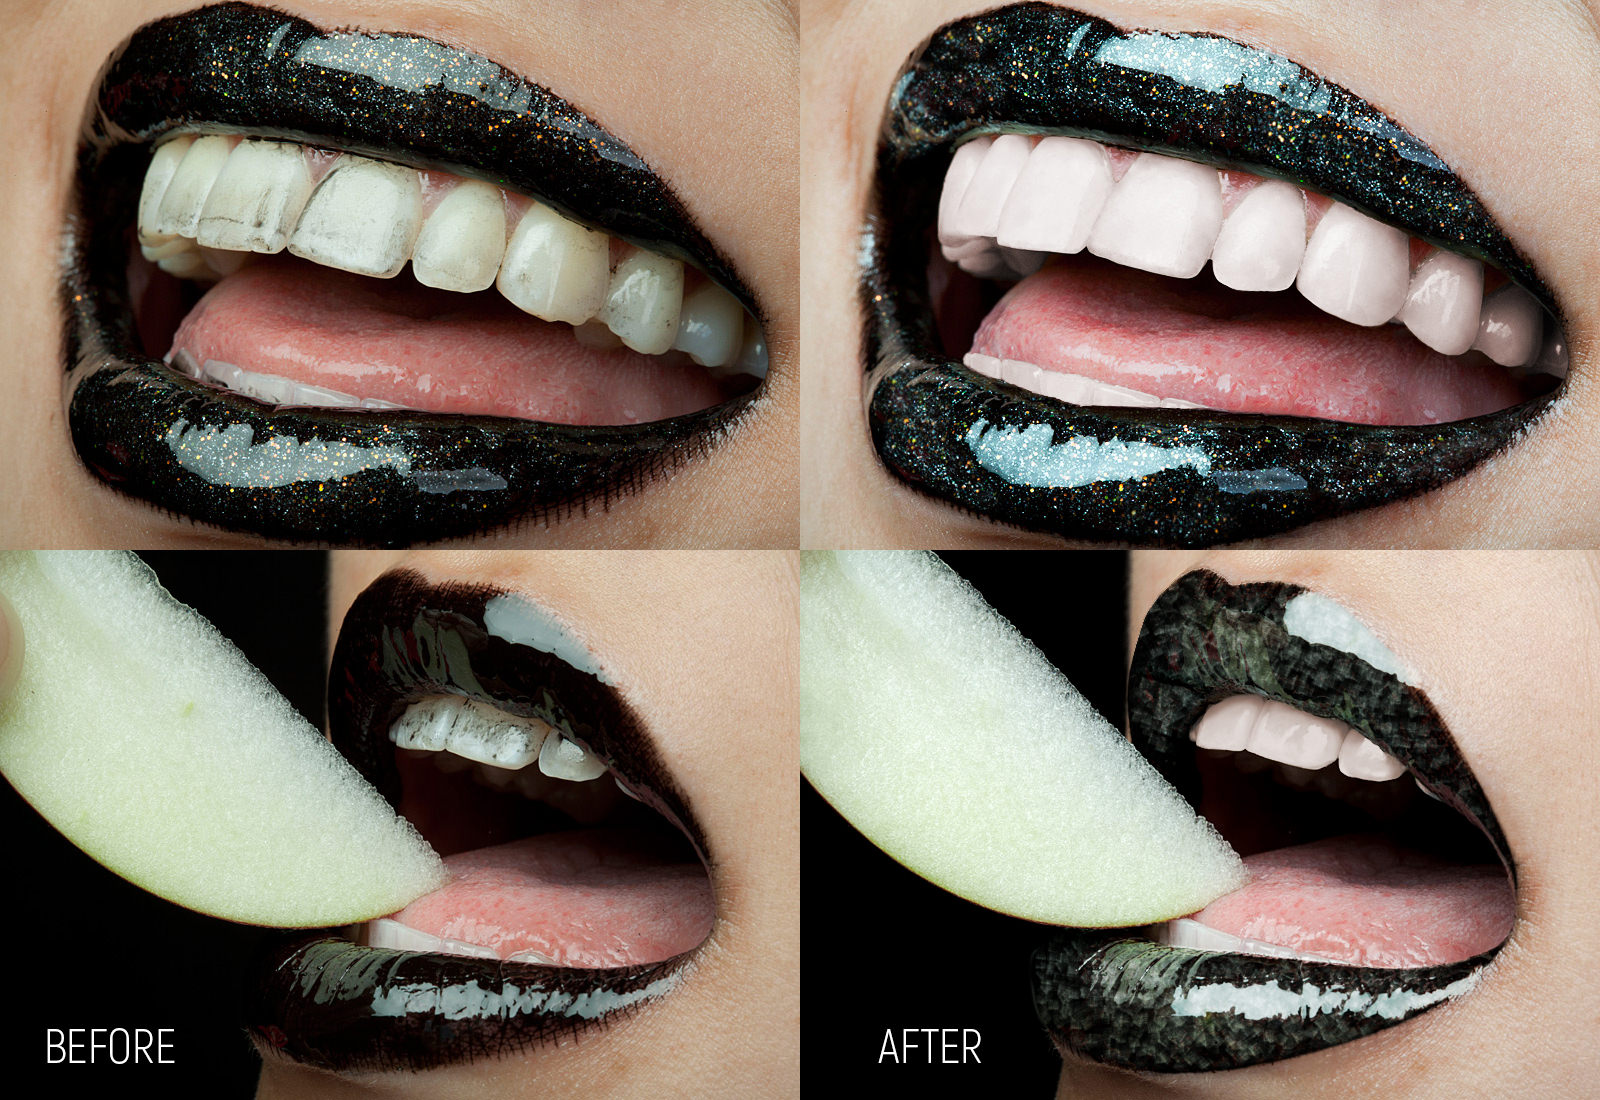 Brightness, contrast, color correction. Straightened lower teeth, repaired large tooth on the upper right part and the chipped one next to it. Adjusted the apple's shape. Removed black lipstick stains from the tongue and teeth using composited textures. Color and brightness corrected teeth. Removed skin blemishes around the mouth, contour lips and made them look more glossy.